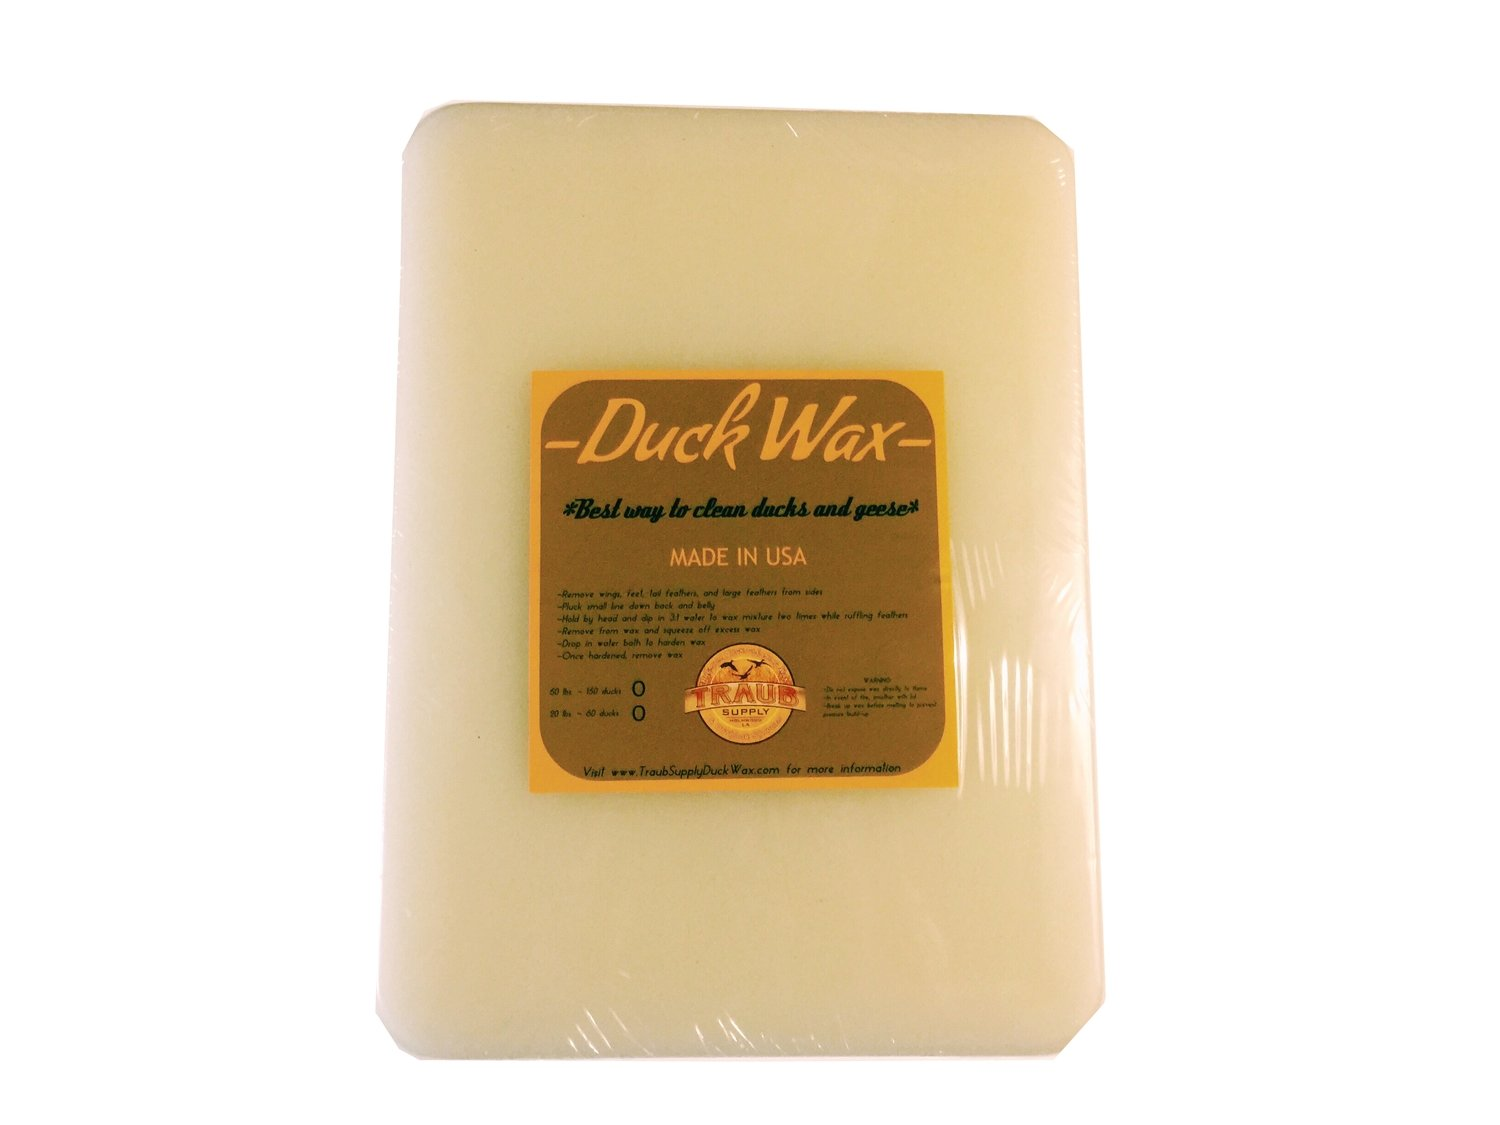 BUY NOW- 1 slab 11 lbs. Farm Duck Wax (CLEANS ABOUT 20-30 FARM DUCKS) USA ONLY SHIPPING INCLUDED